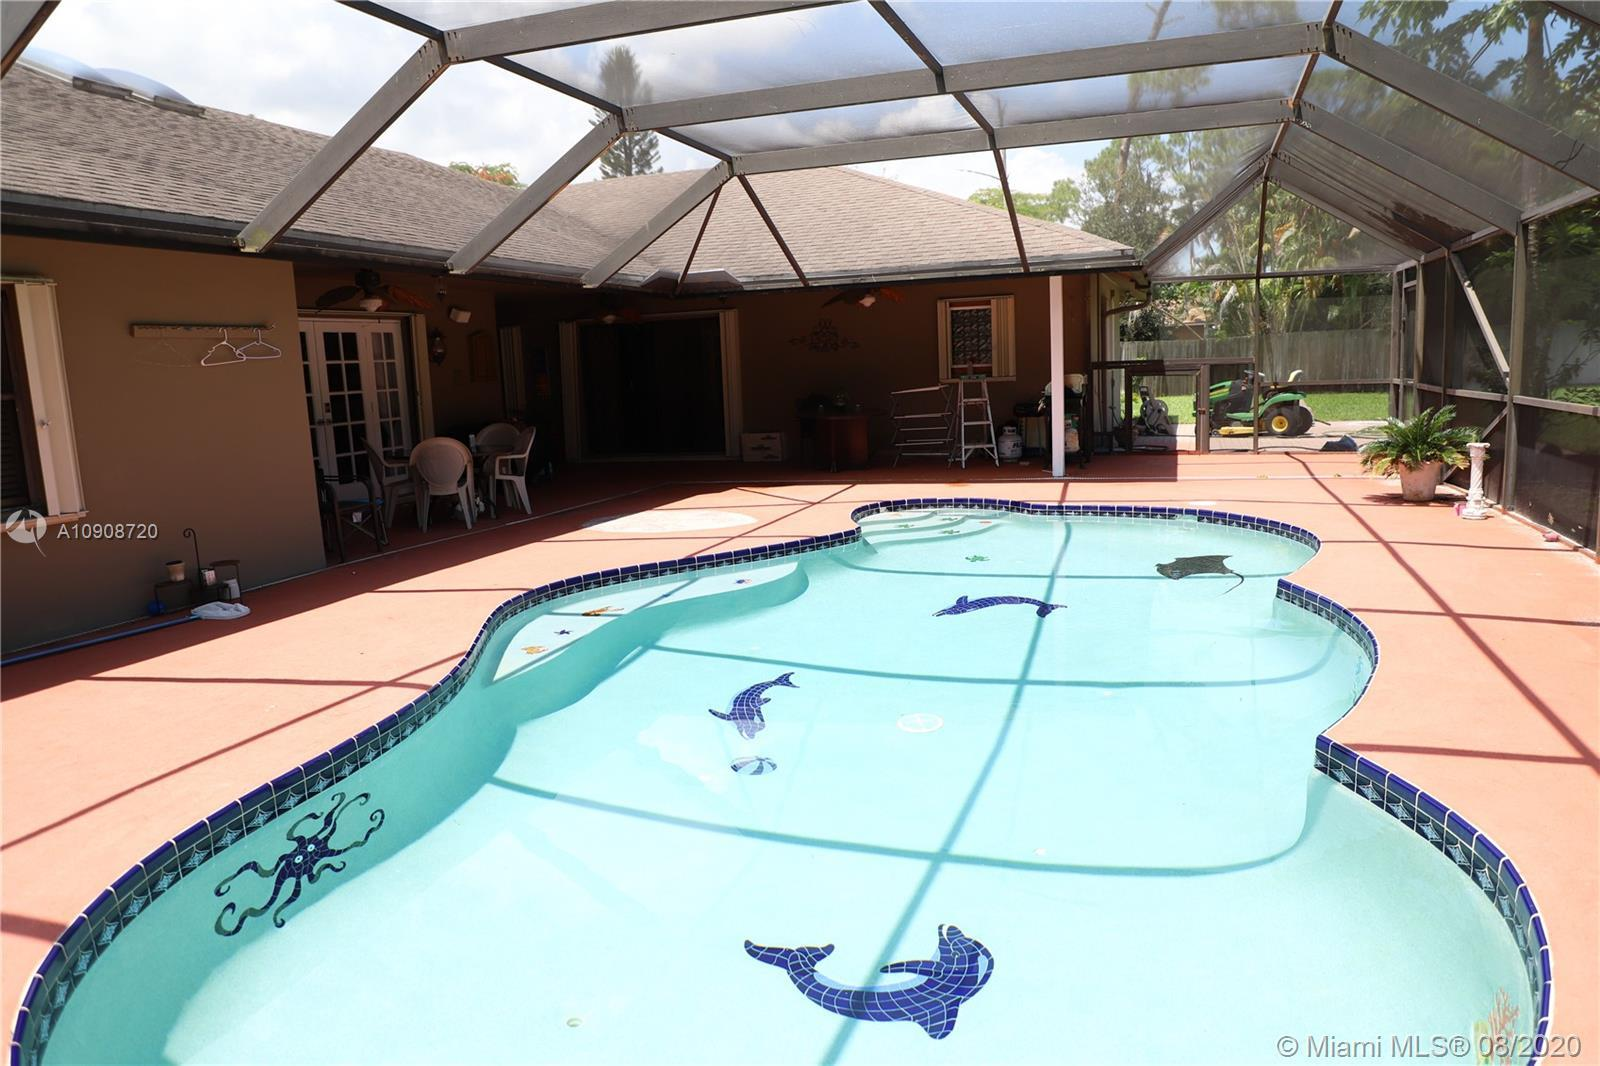 THIS IS THE OPPORTUNITY YOU HAVE BEEN WAITING FOR!-POOL HOUSE ON 1 ACRE OF LAND, OVER 3000 SQUARE FE